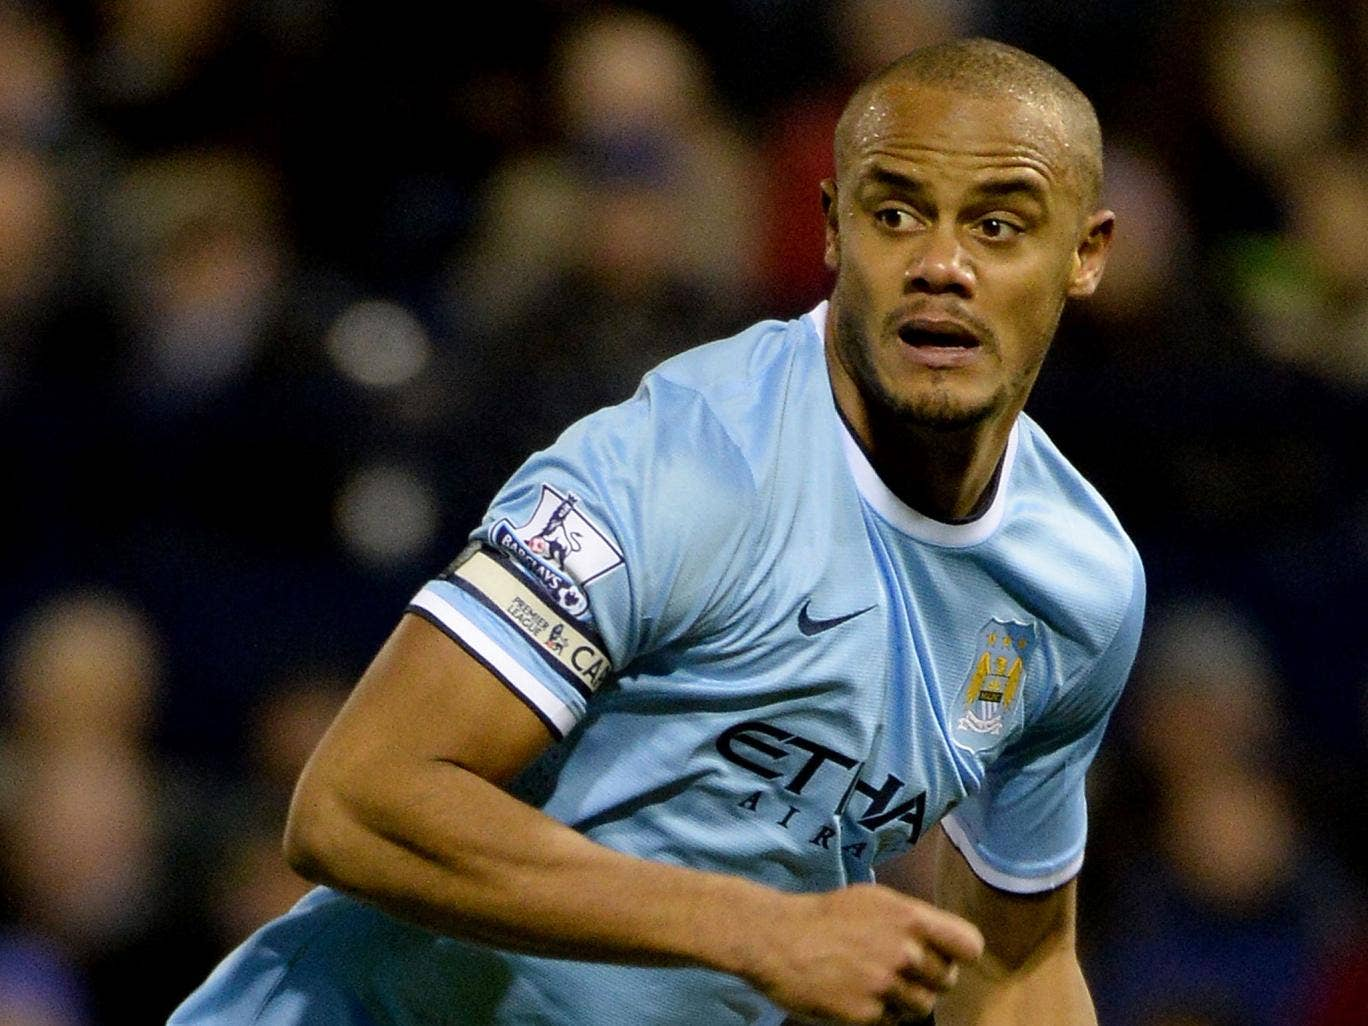 Manchester City captain Vincent Kompany is hoping that his injury troubles are behind him after making return against West Brom